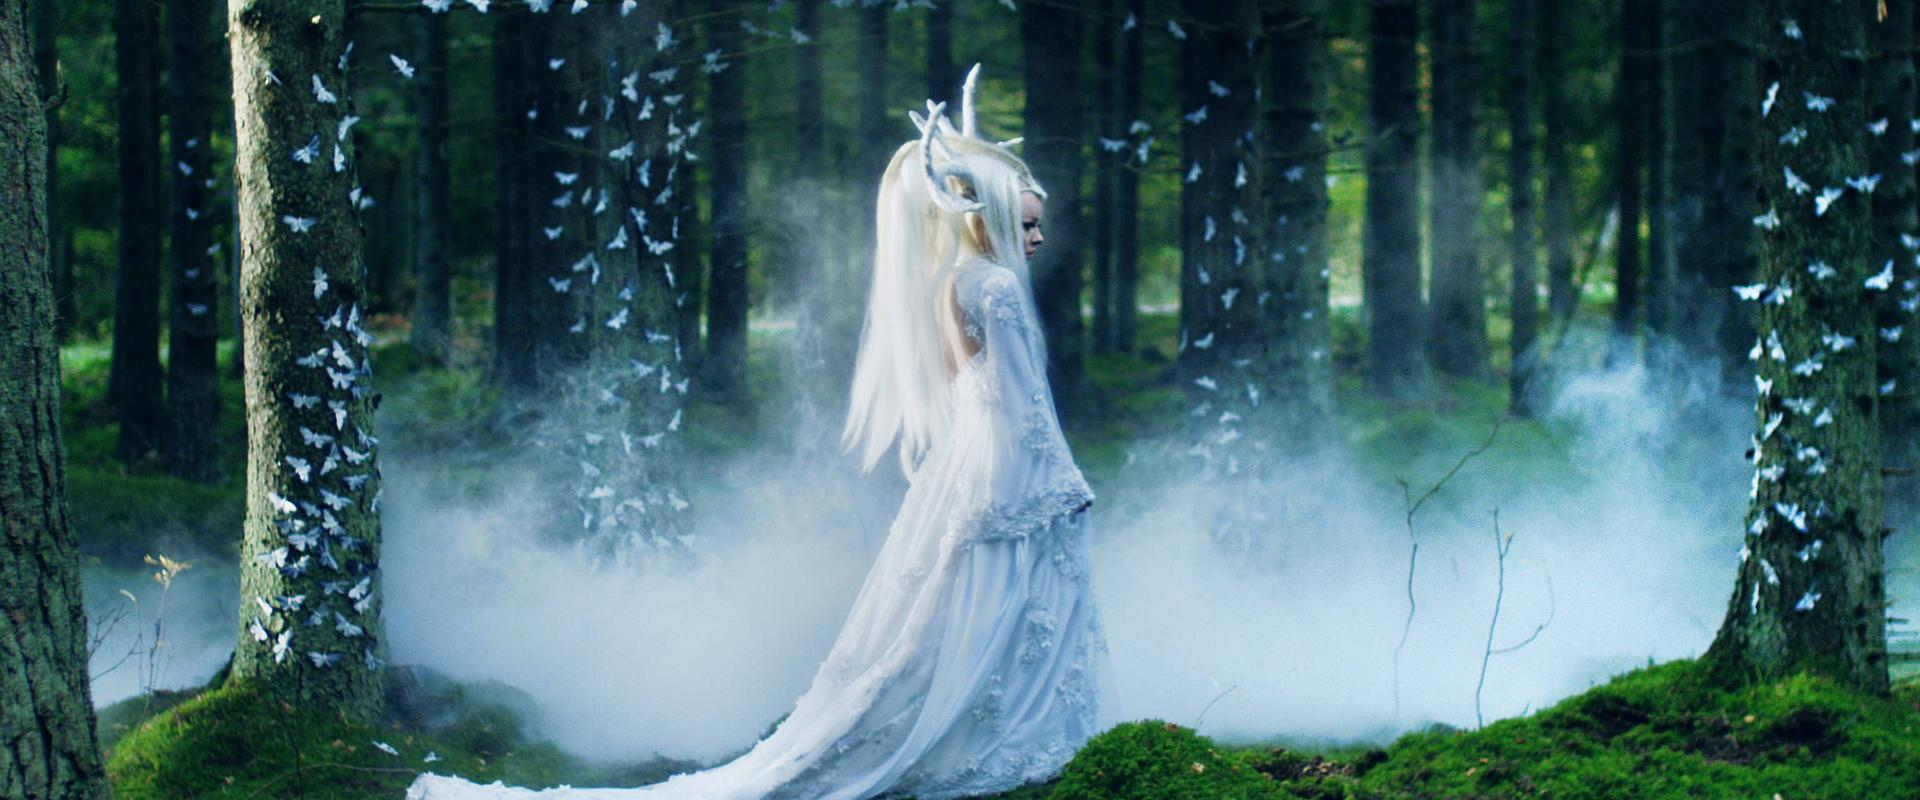 http://lunaswitchescloset.blogspot.com/2016/08/kerli-diamond-hard-official-music-video.html